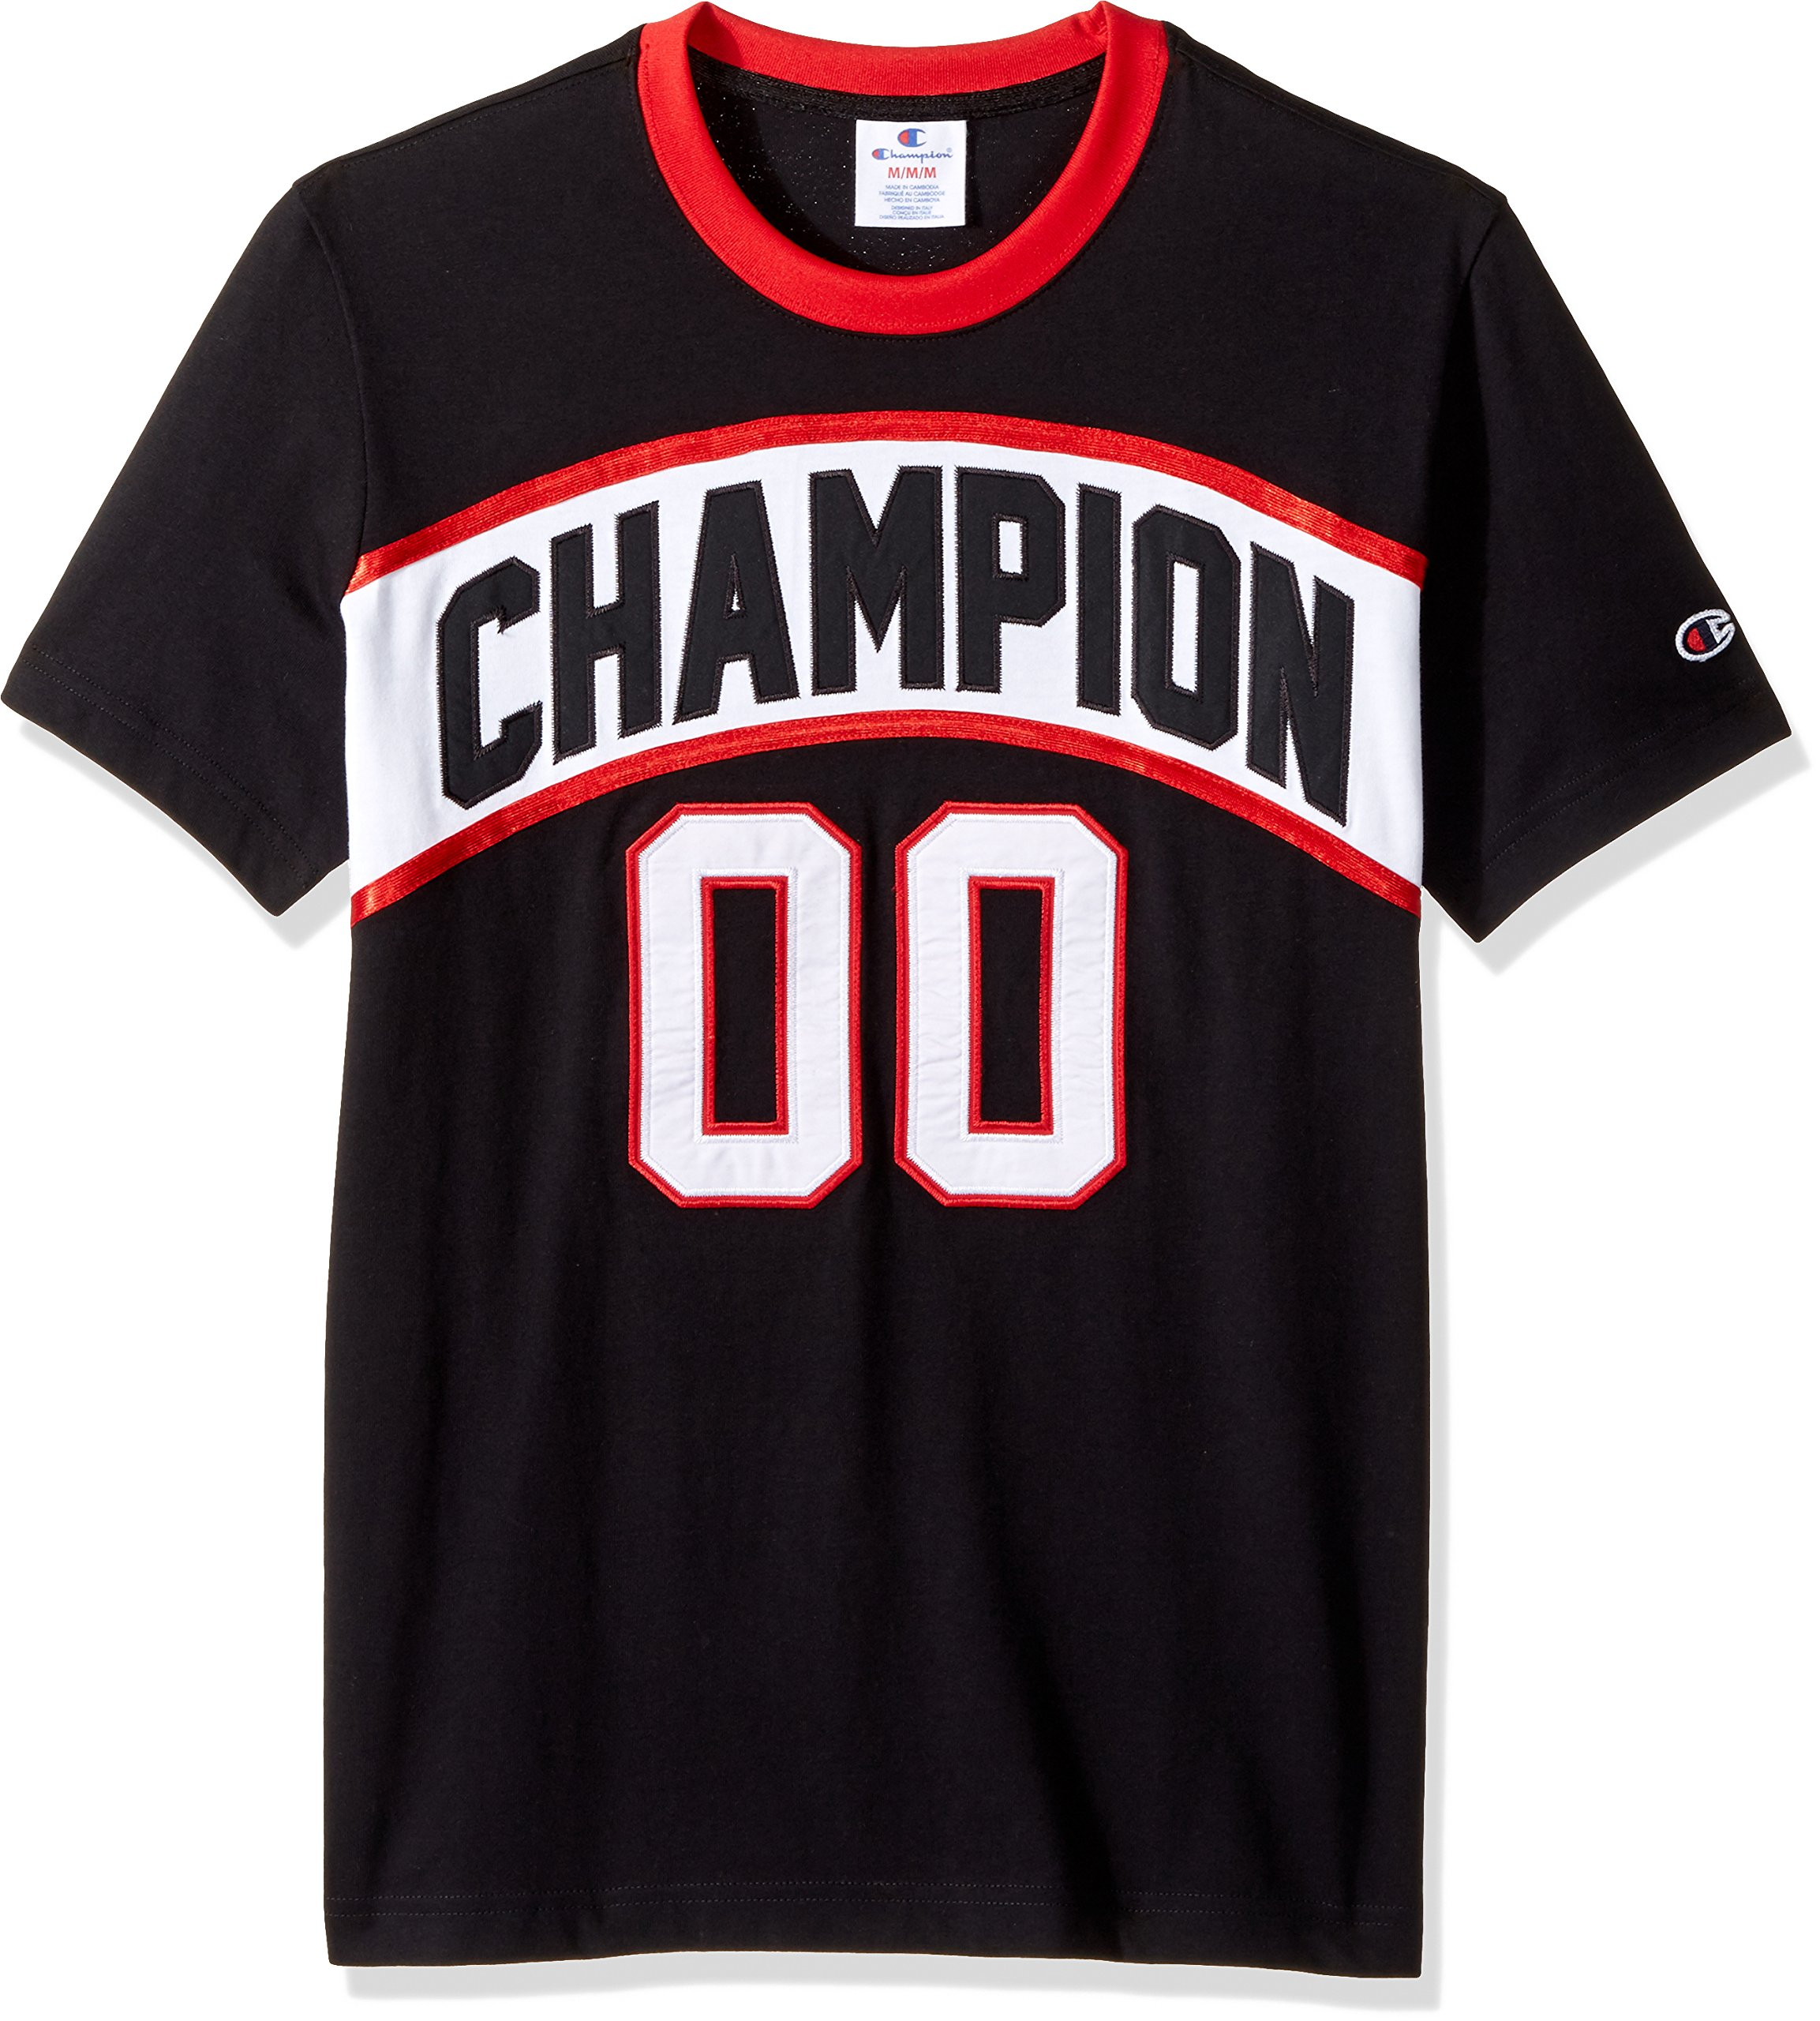 Champion LIFE Men's Crew Neck Basketball Tee (Limited Edition), Black, Large